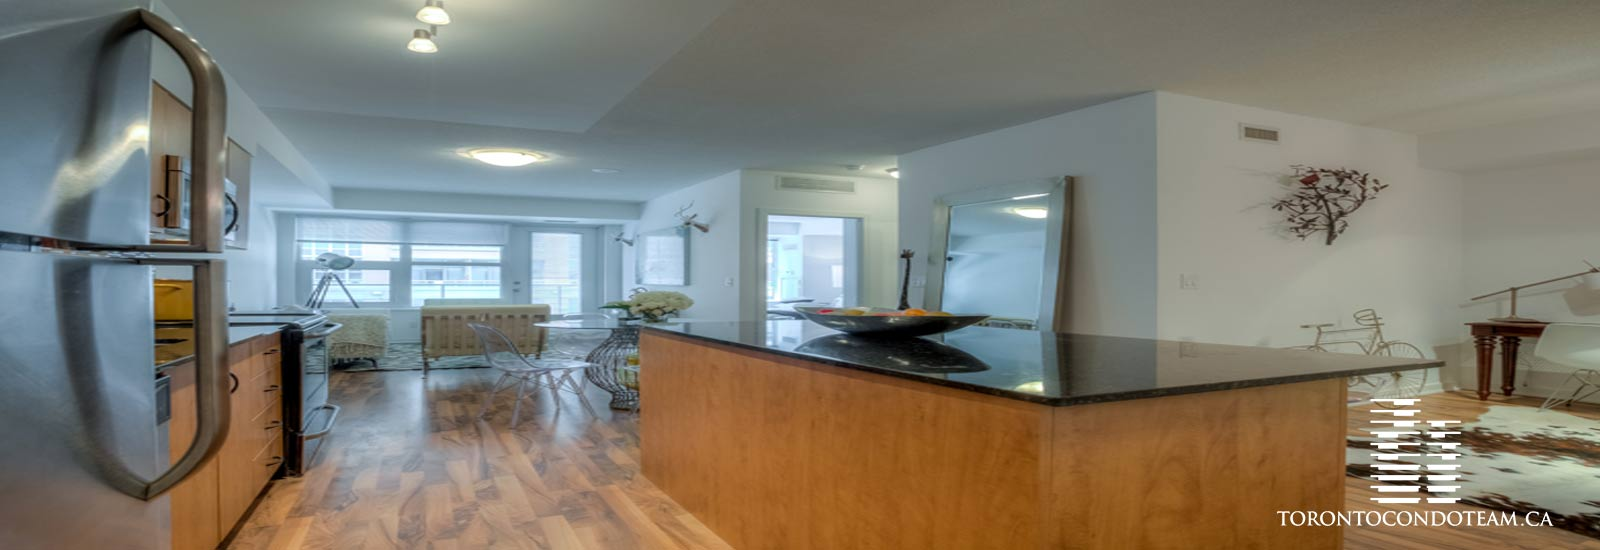 59 East Liberty Street Condos For Sale